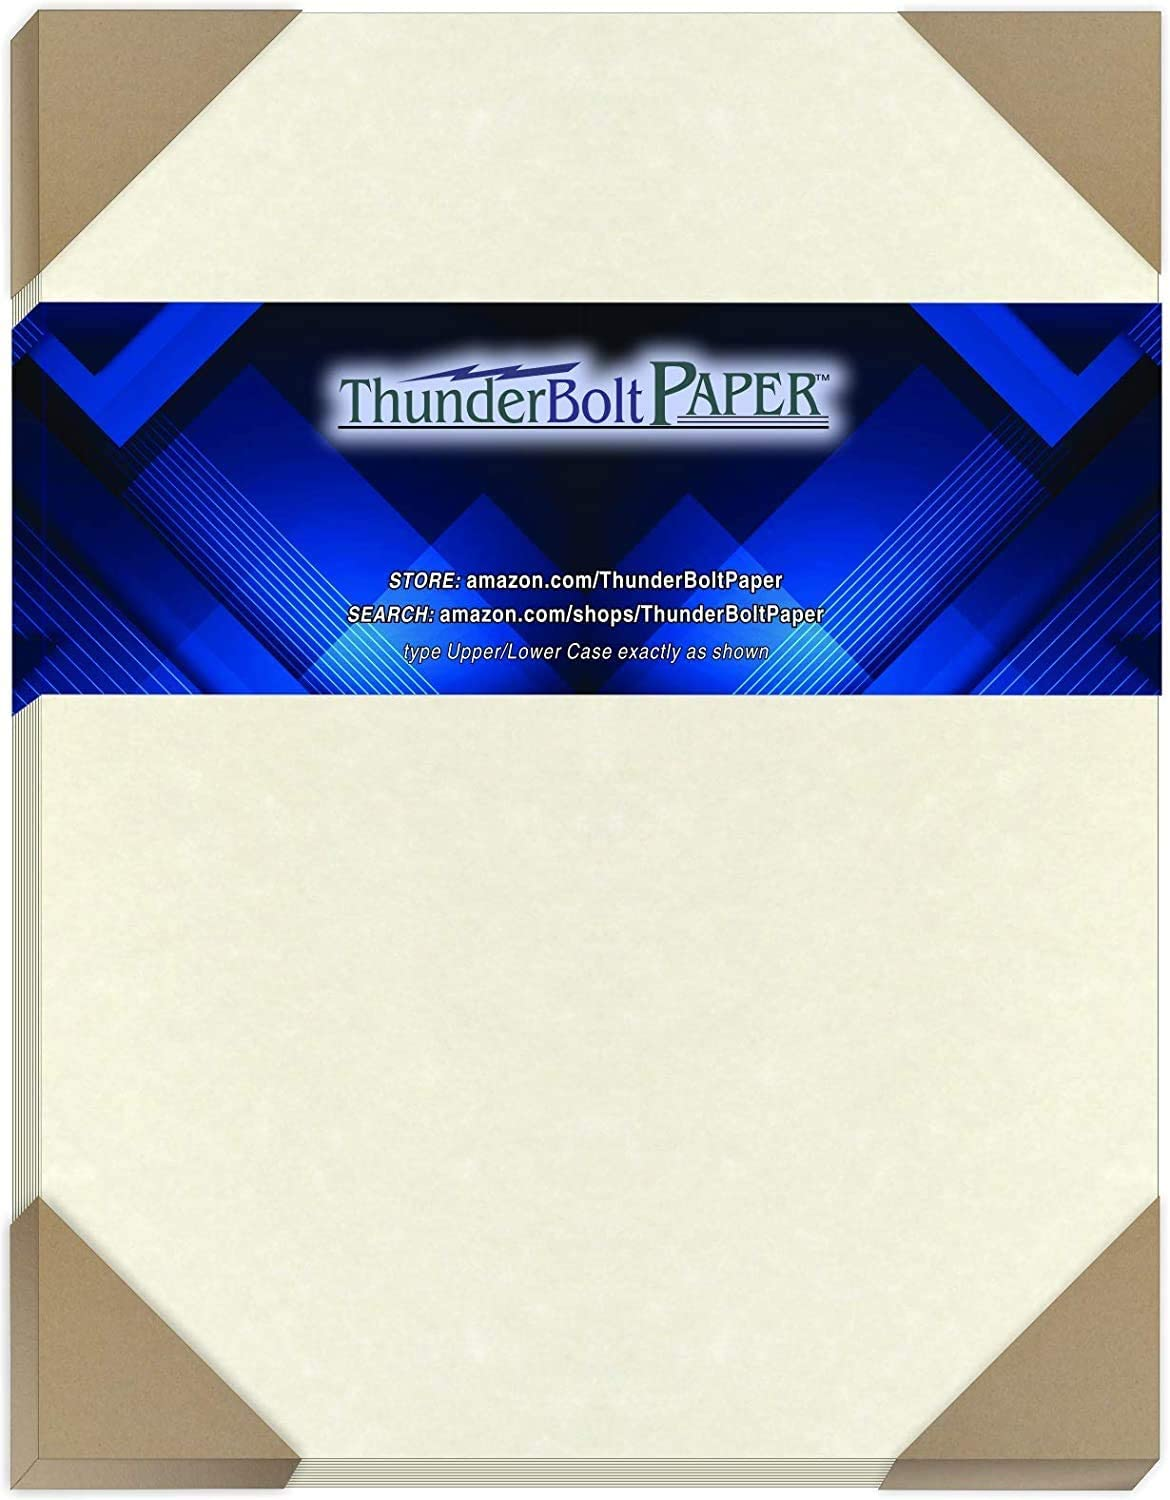 50 Natural Parchment 60# Text (=24# Bond) Paper Sheets - 8.5 X 11 Inches Standard Letter Flyer Size - 60 Pound is Not Card Weight - Vintage Colored Old Parchment Semblance